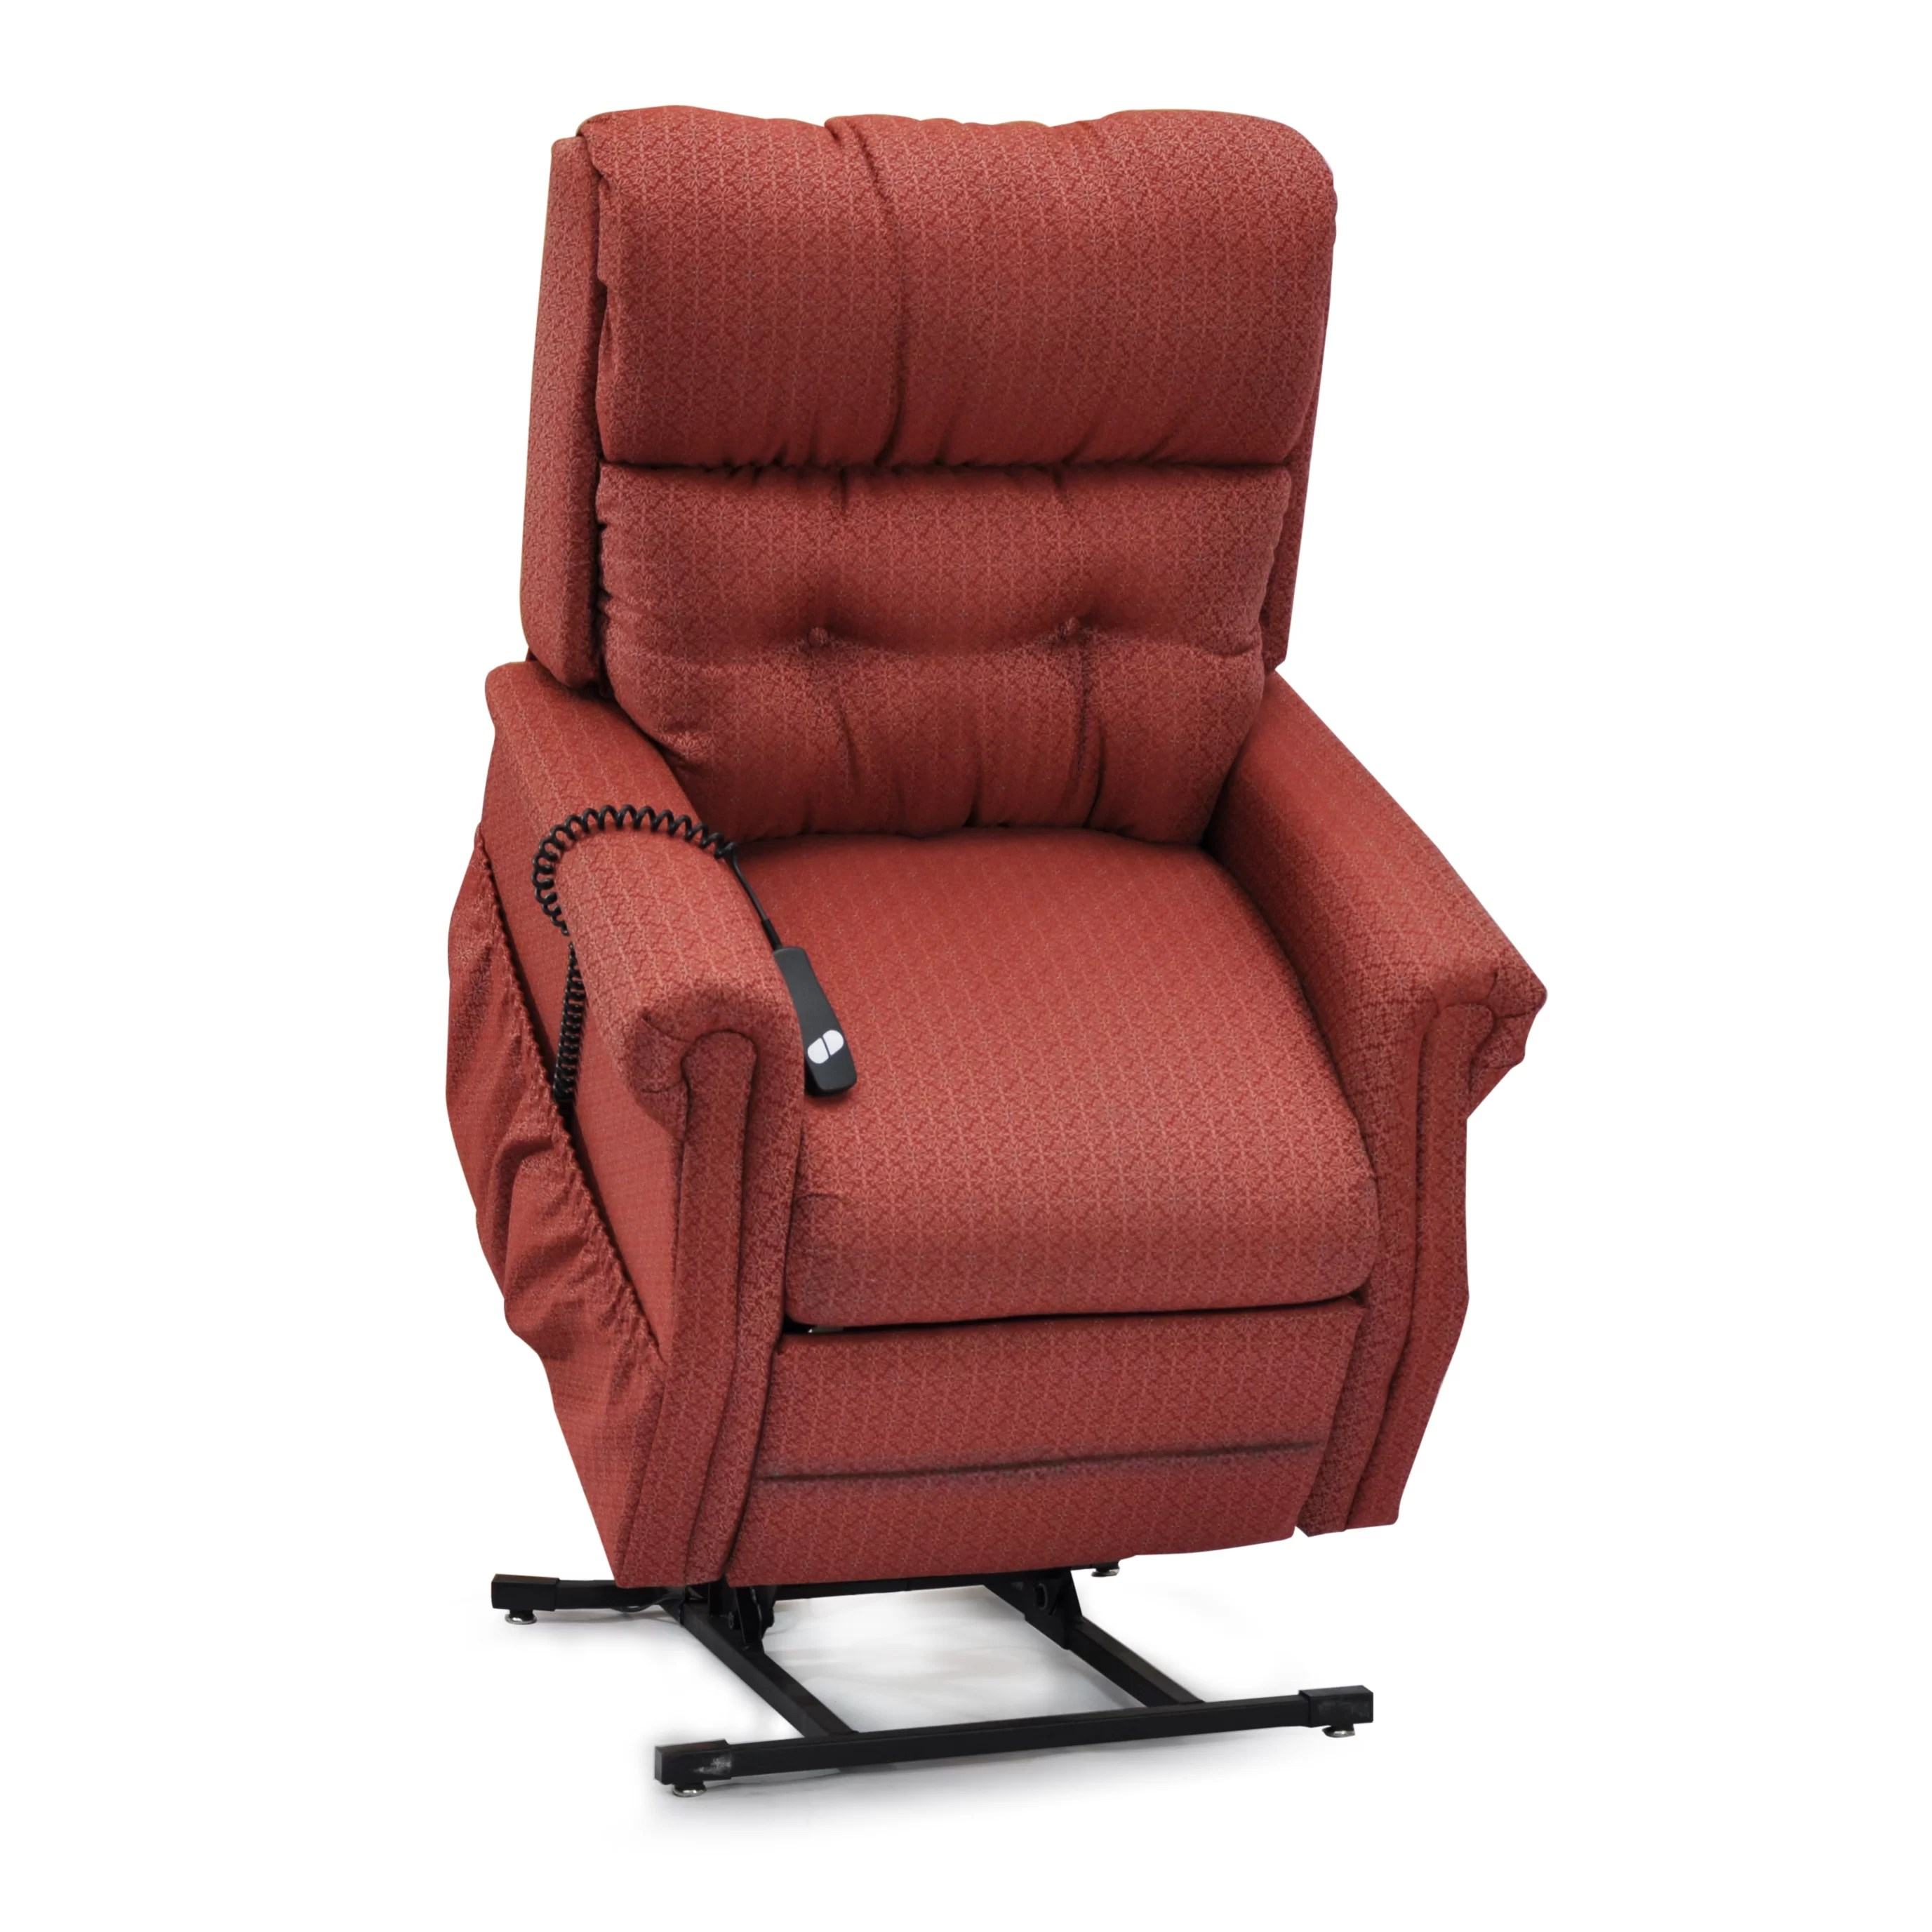 Med Lift Chairs Two Way Reclining Lift Chair Wayfair